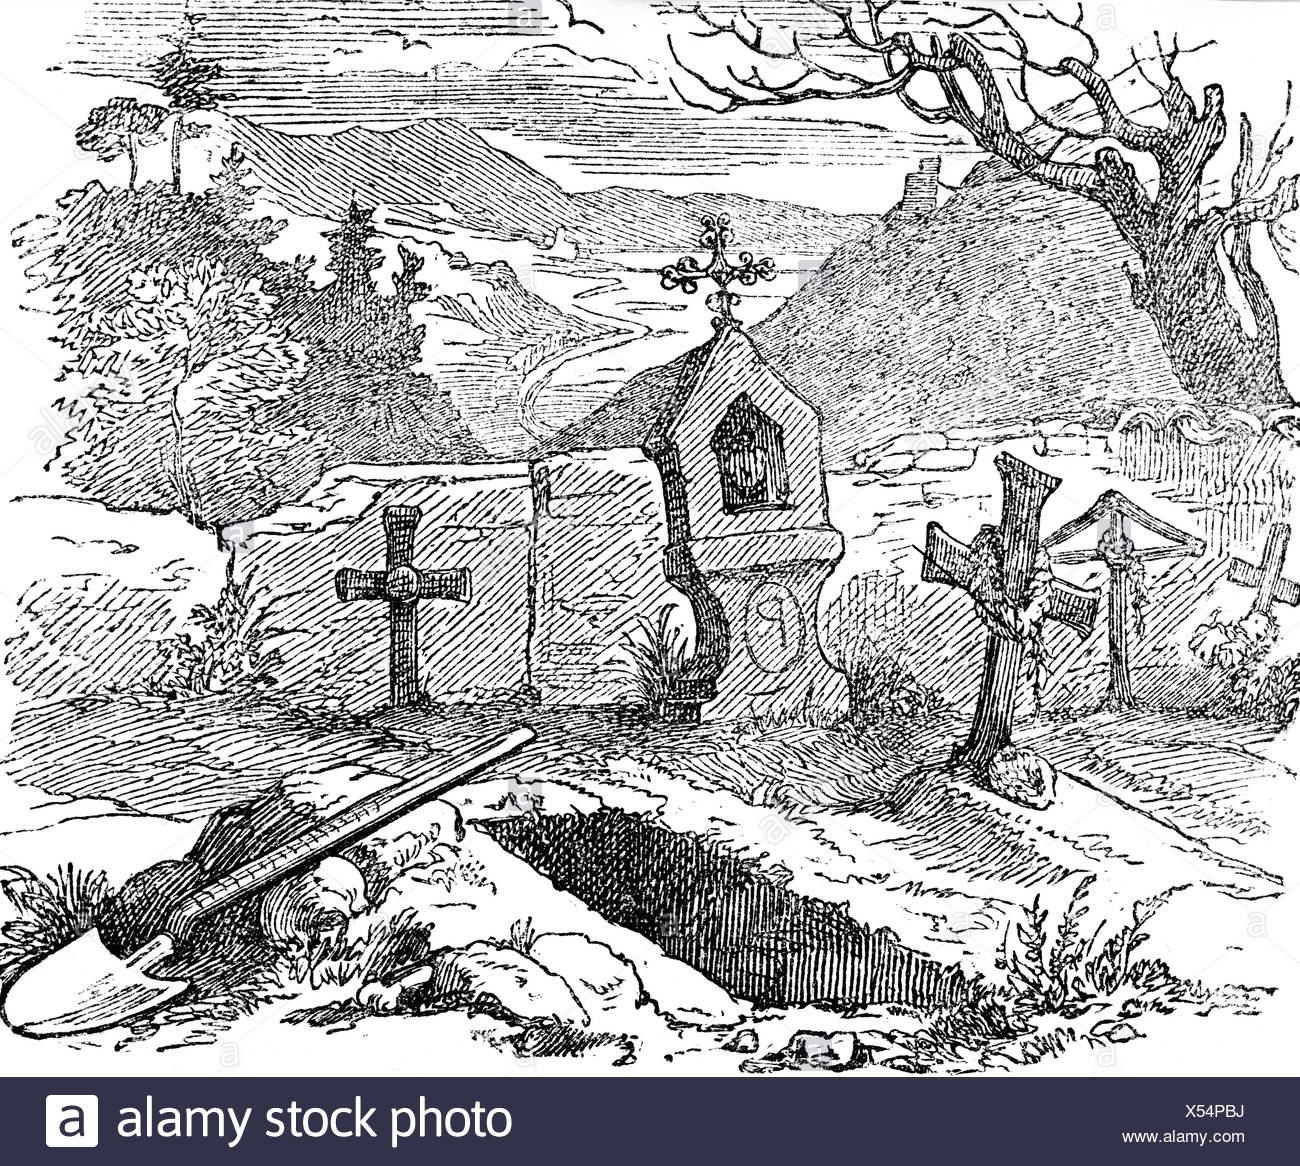 Cemetery with an open grave, engraving, 19th Century - Stock Image